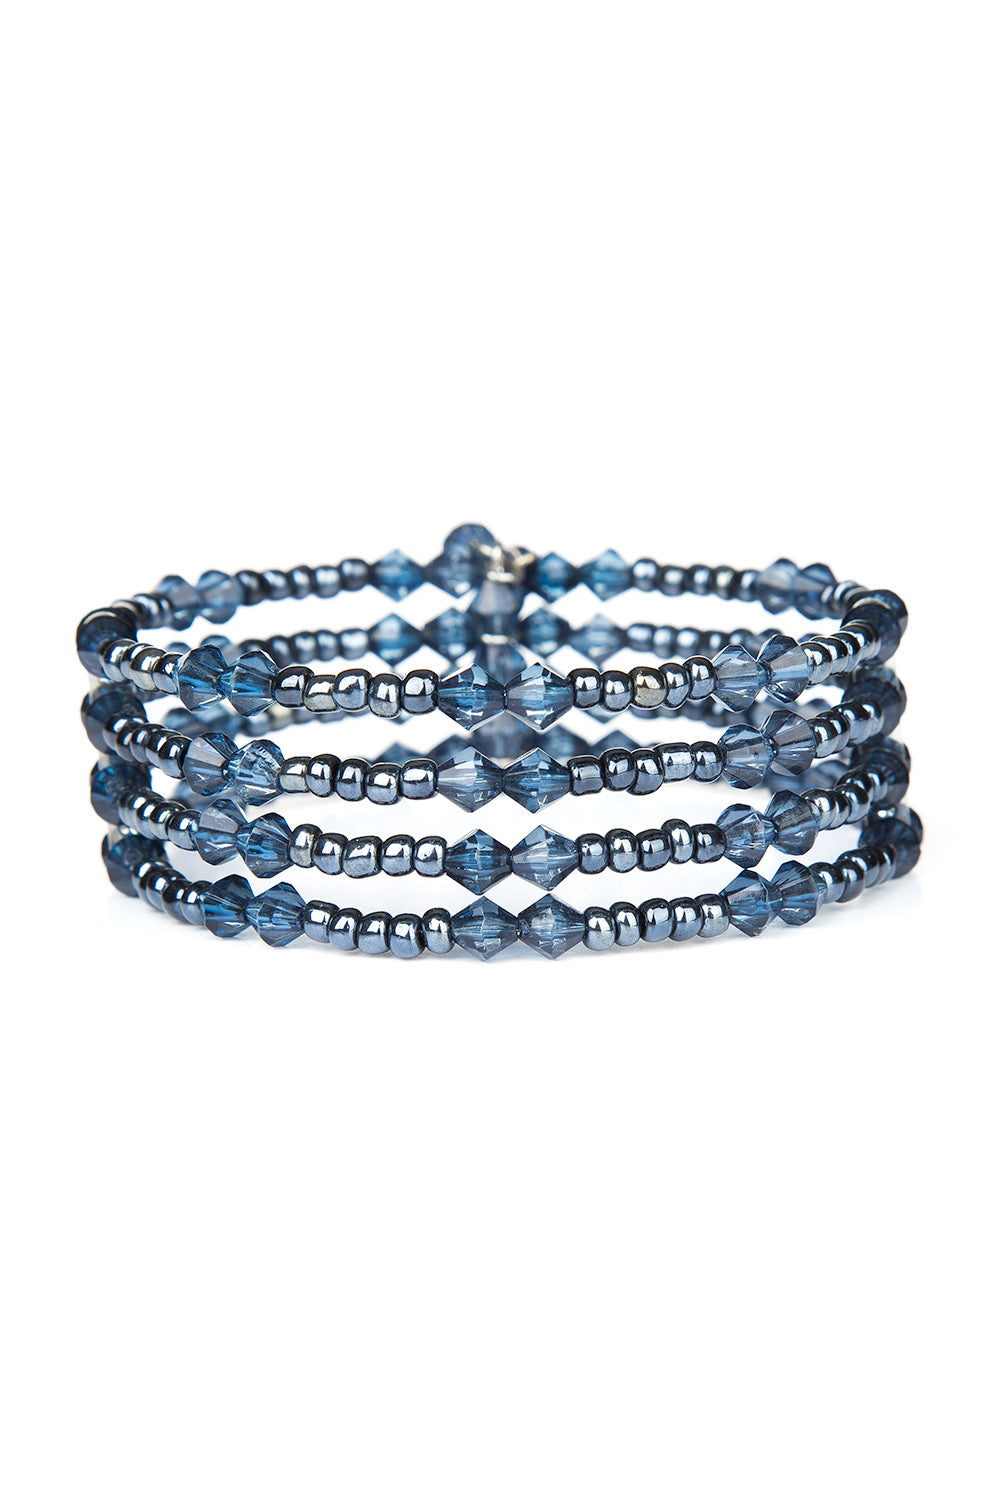 Type 2 Cosmic Bracelet in Blue